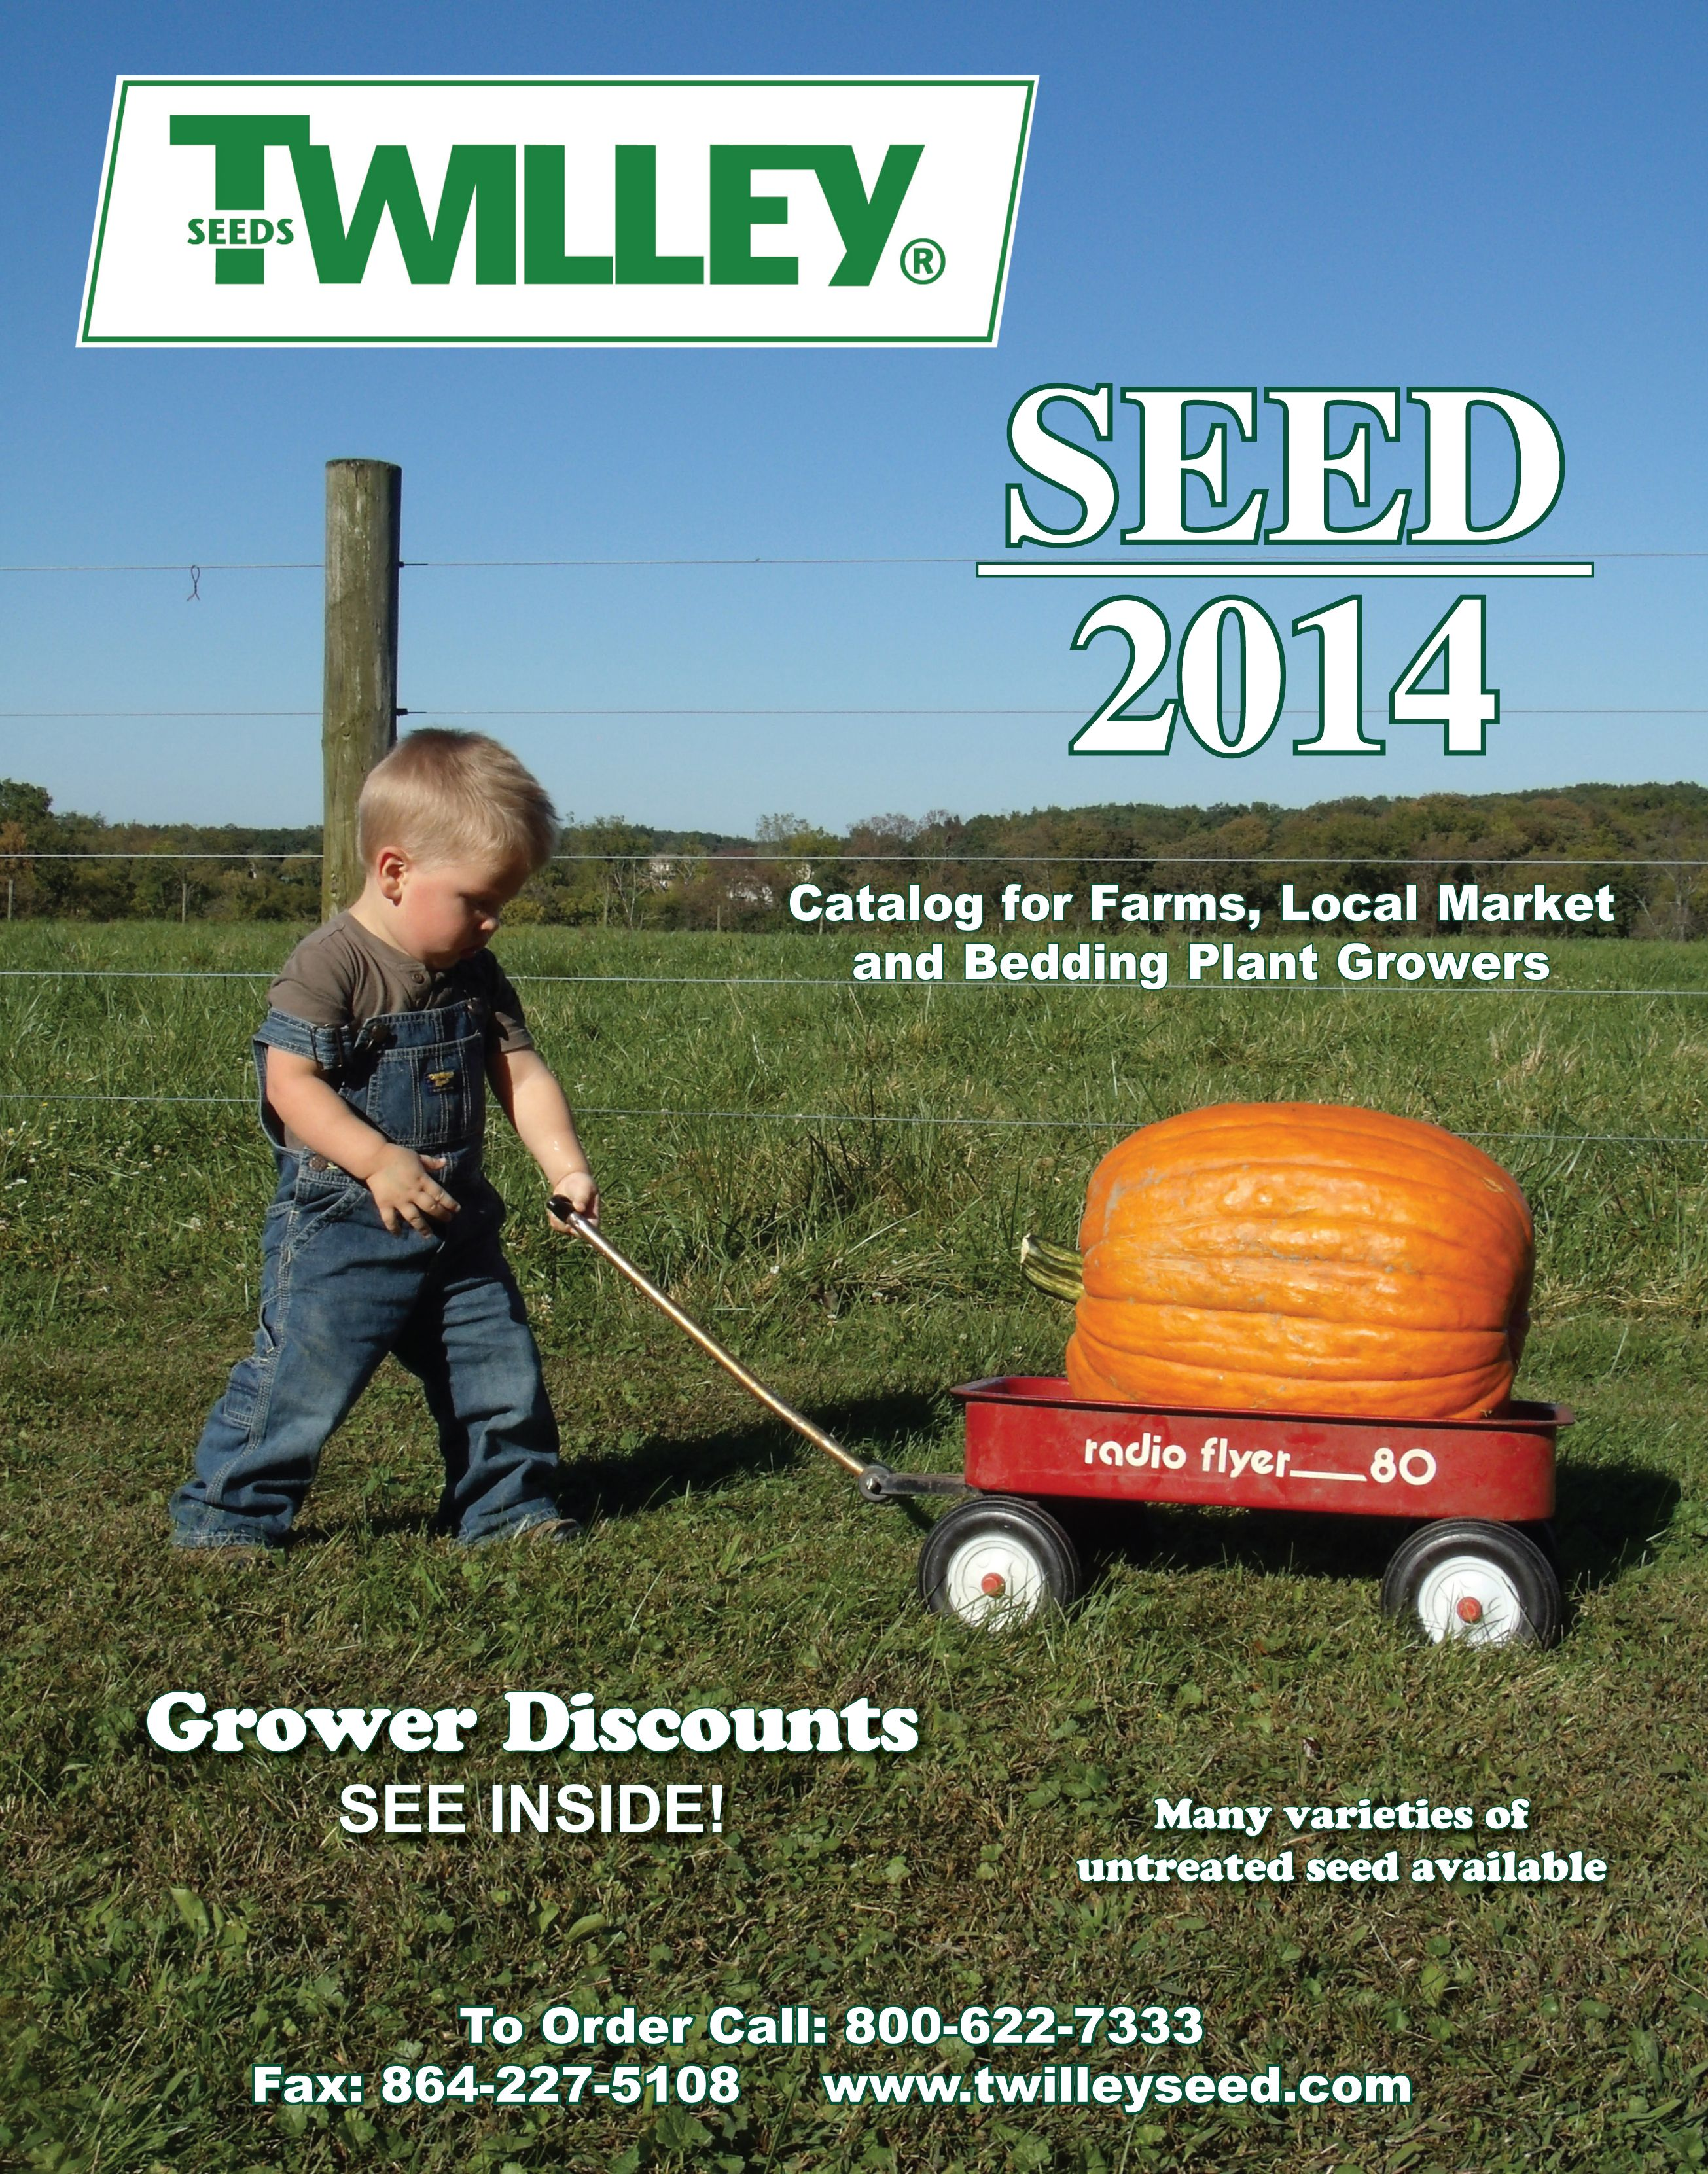 Make The Smart Move And Invest On Quality Flower And Vegetable Seeds  Offered By Twilley Seed In Hodges, SC. Find This Pin And More On Garden  Catalogs Online ...